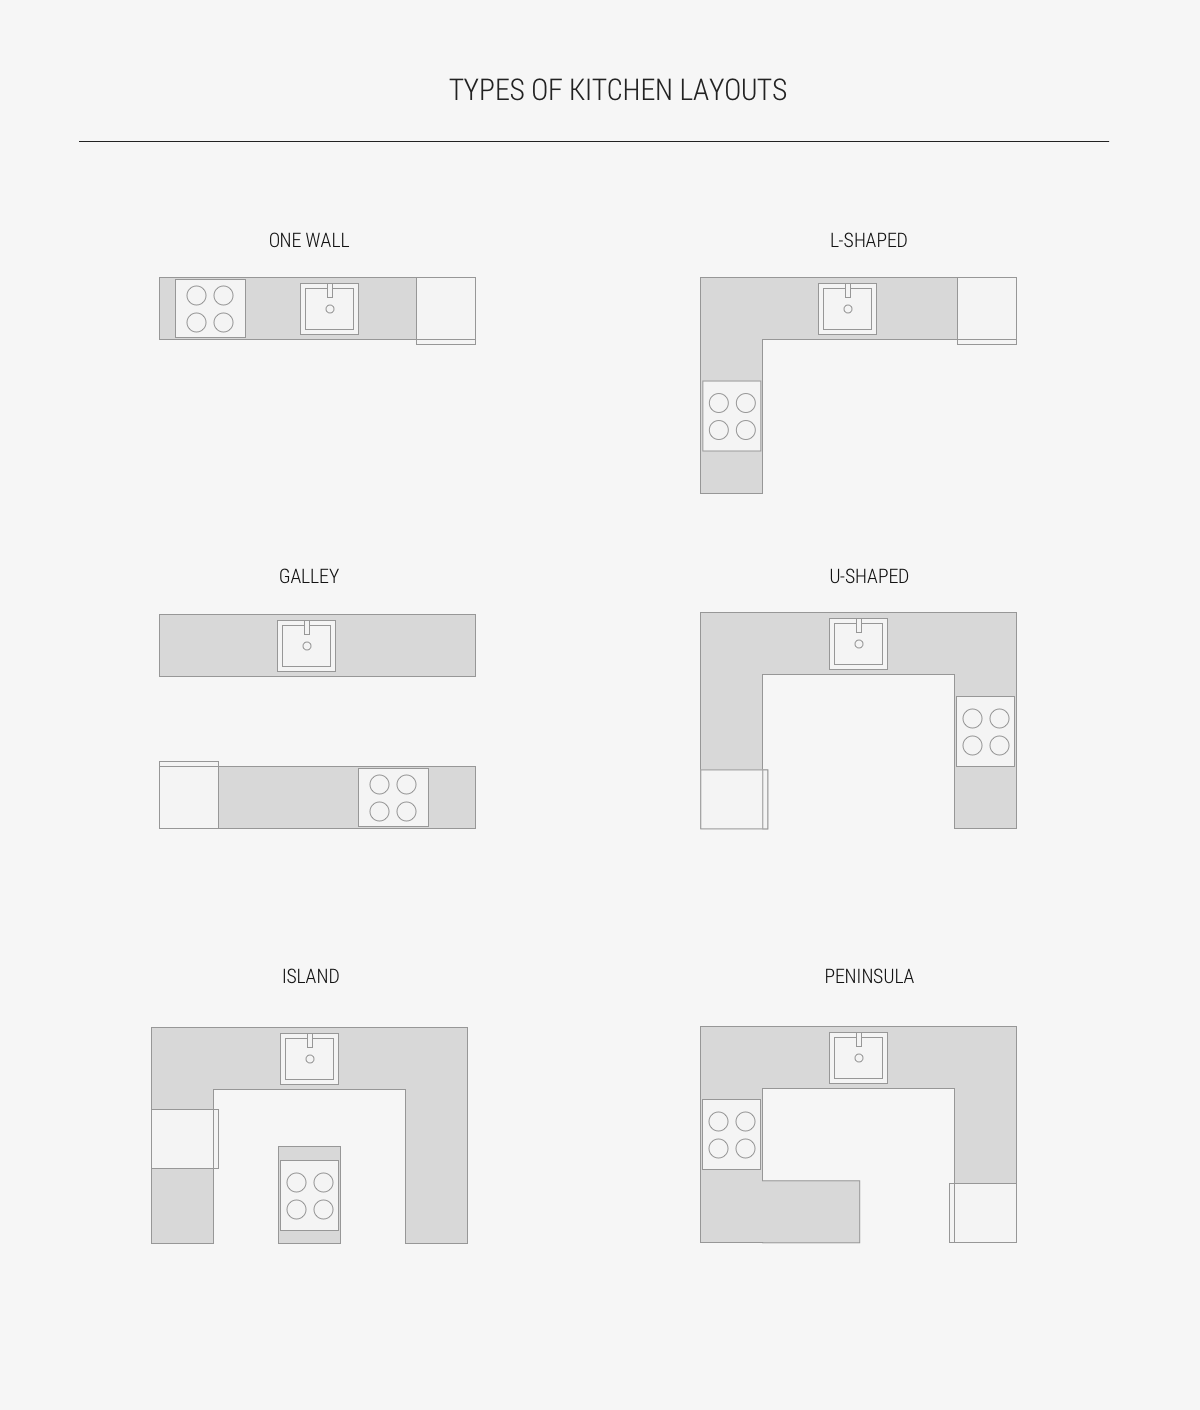 kitchen-layout-types-one-wall-galley-l-shaped-u-shaped-island-peninsula-1-2